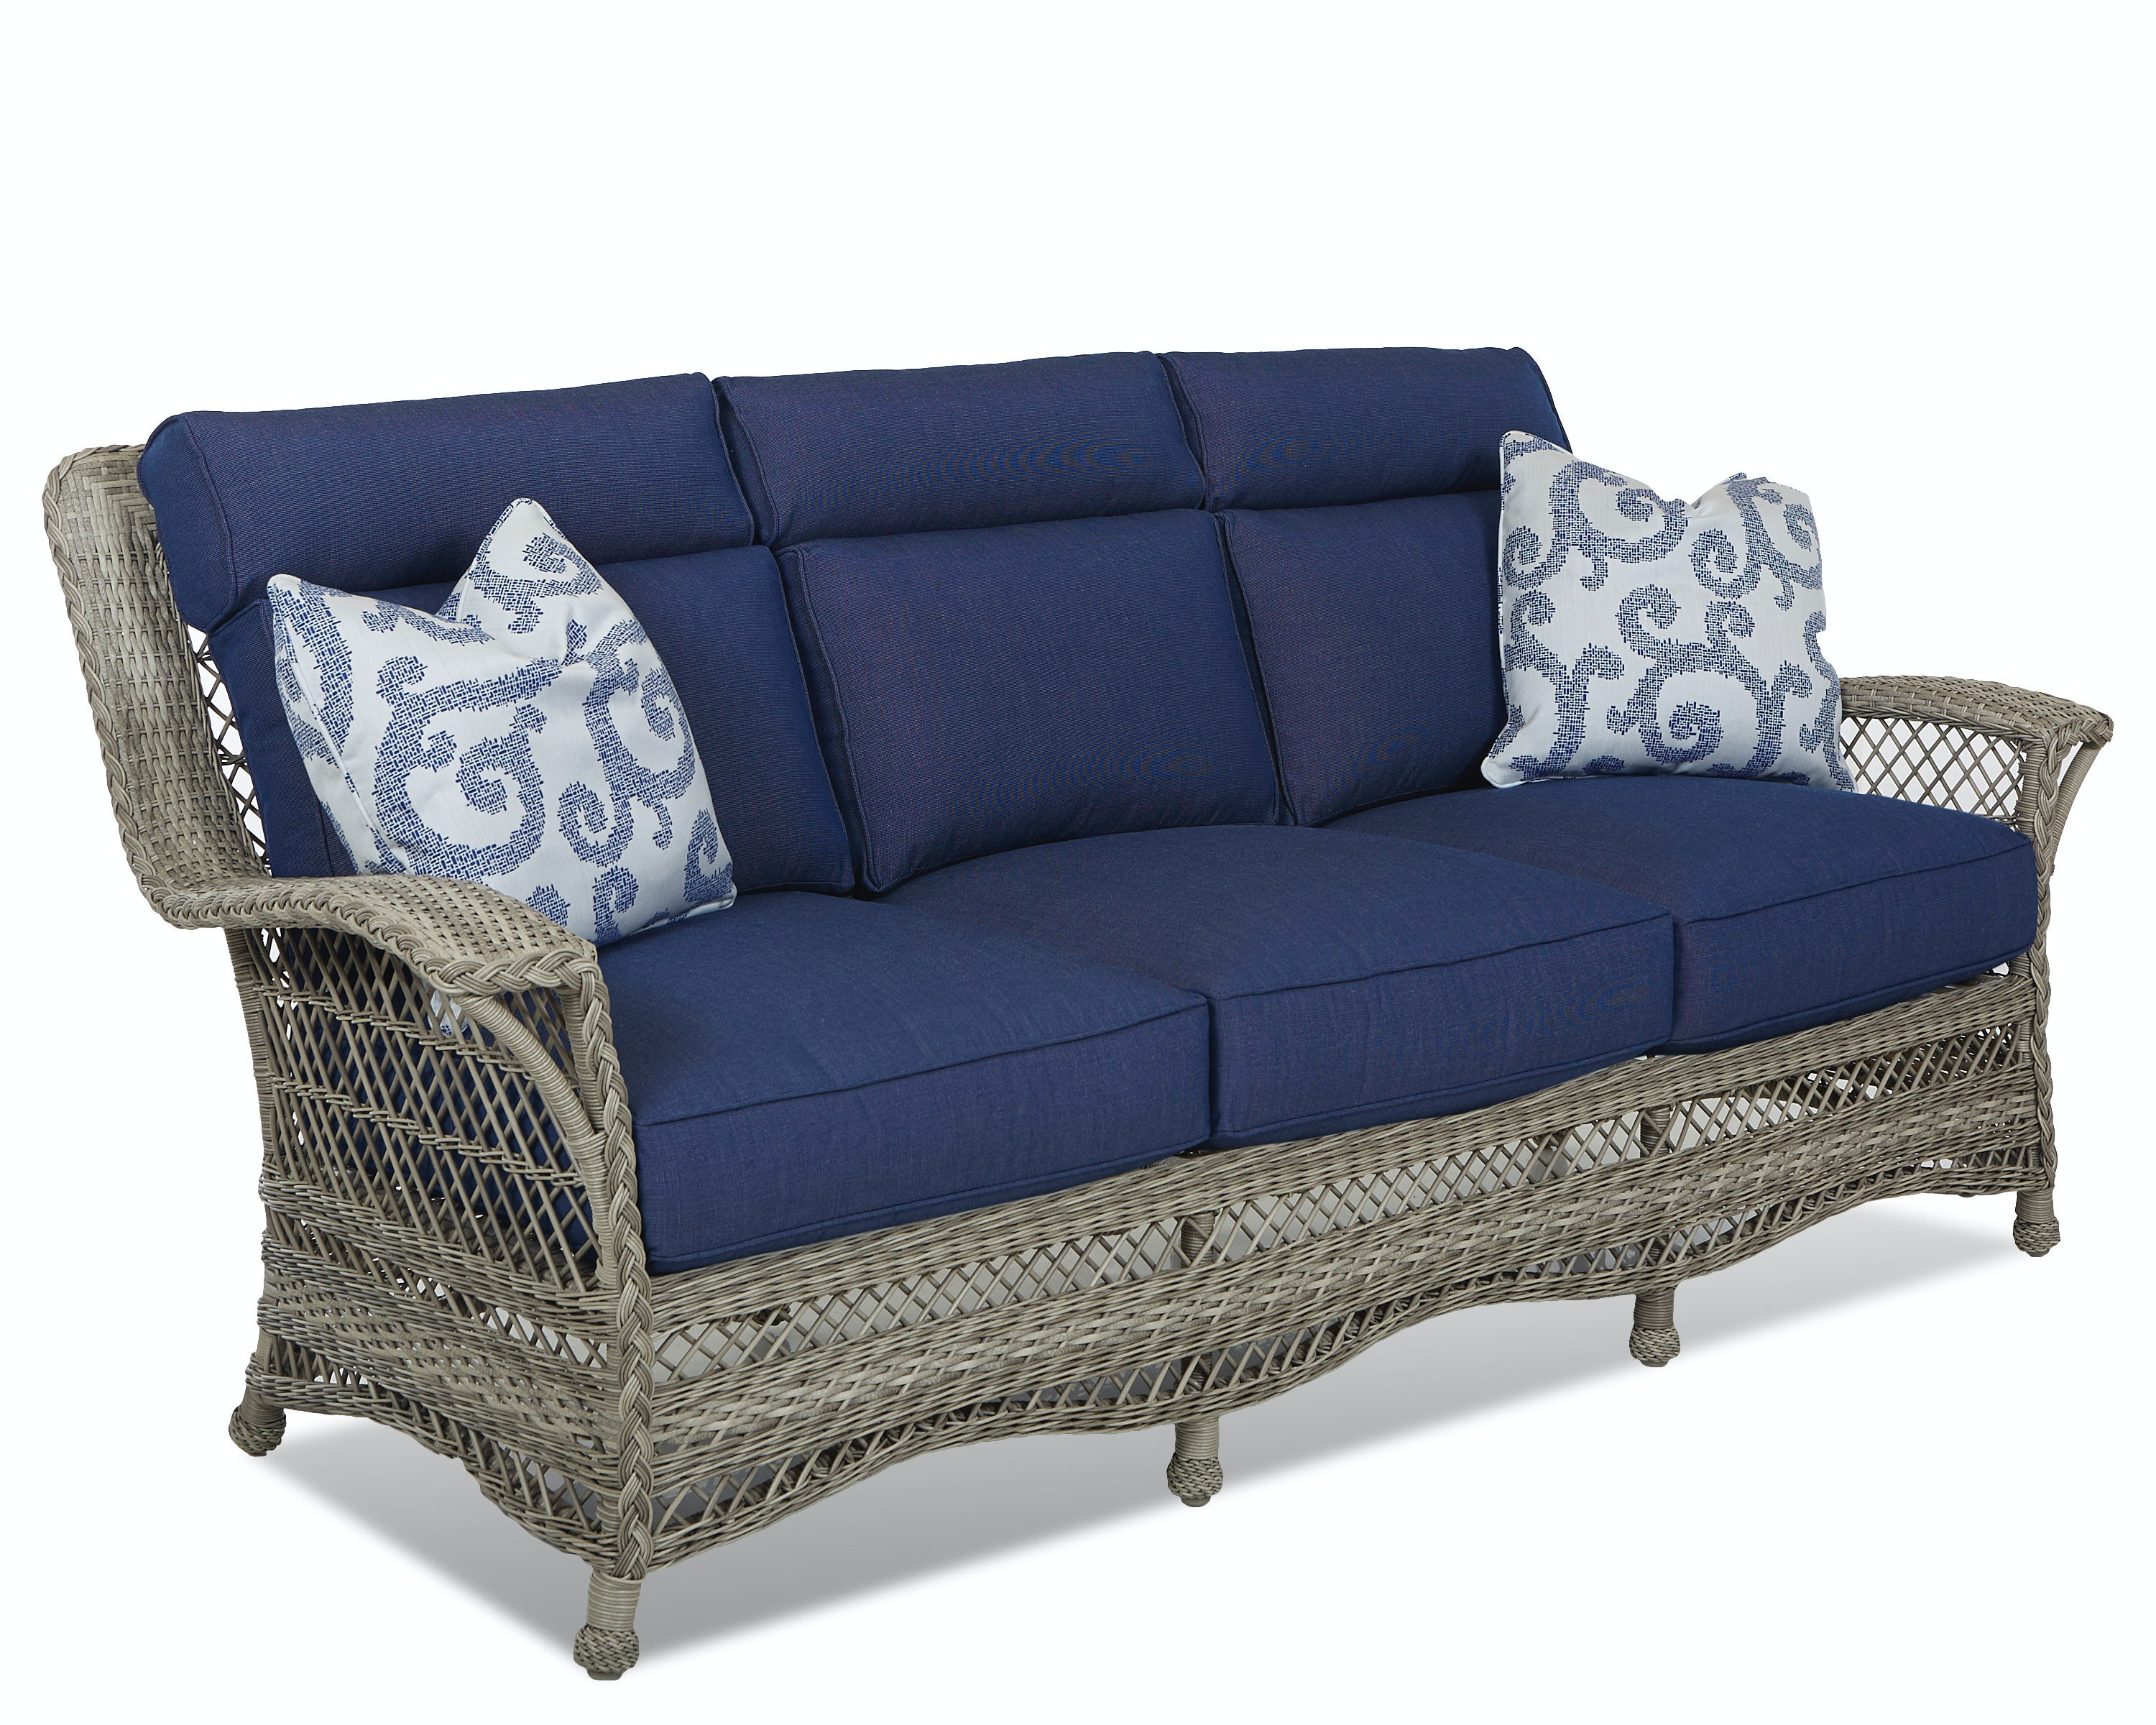 Klaussner Outdoor Willow Sofa W1200 S